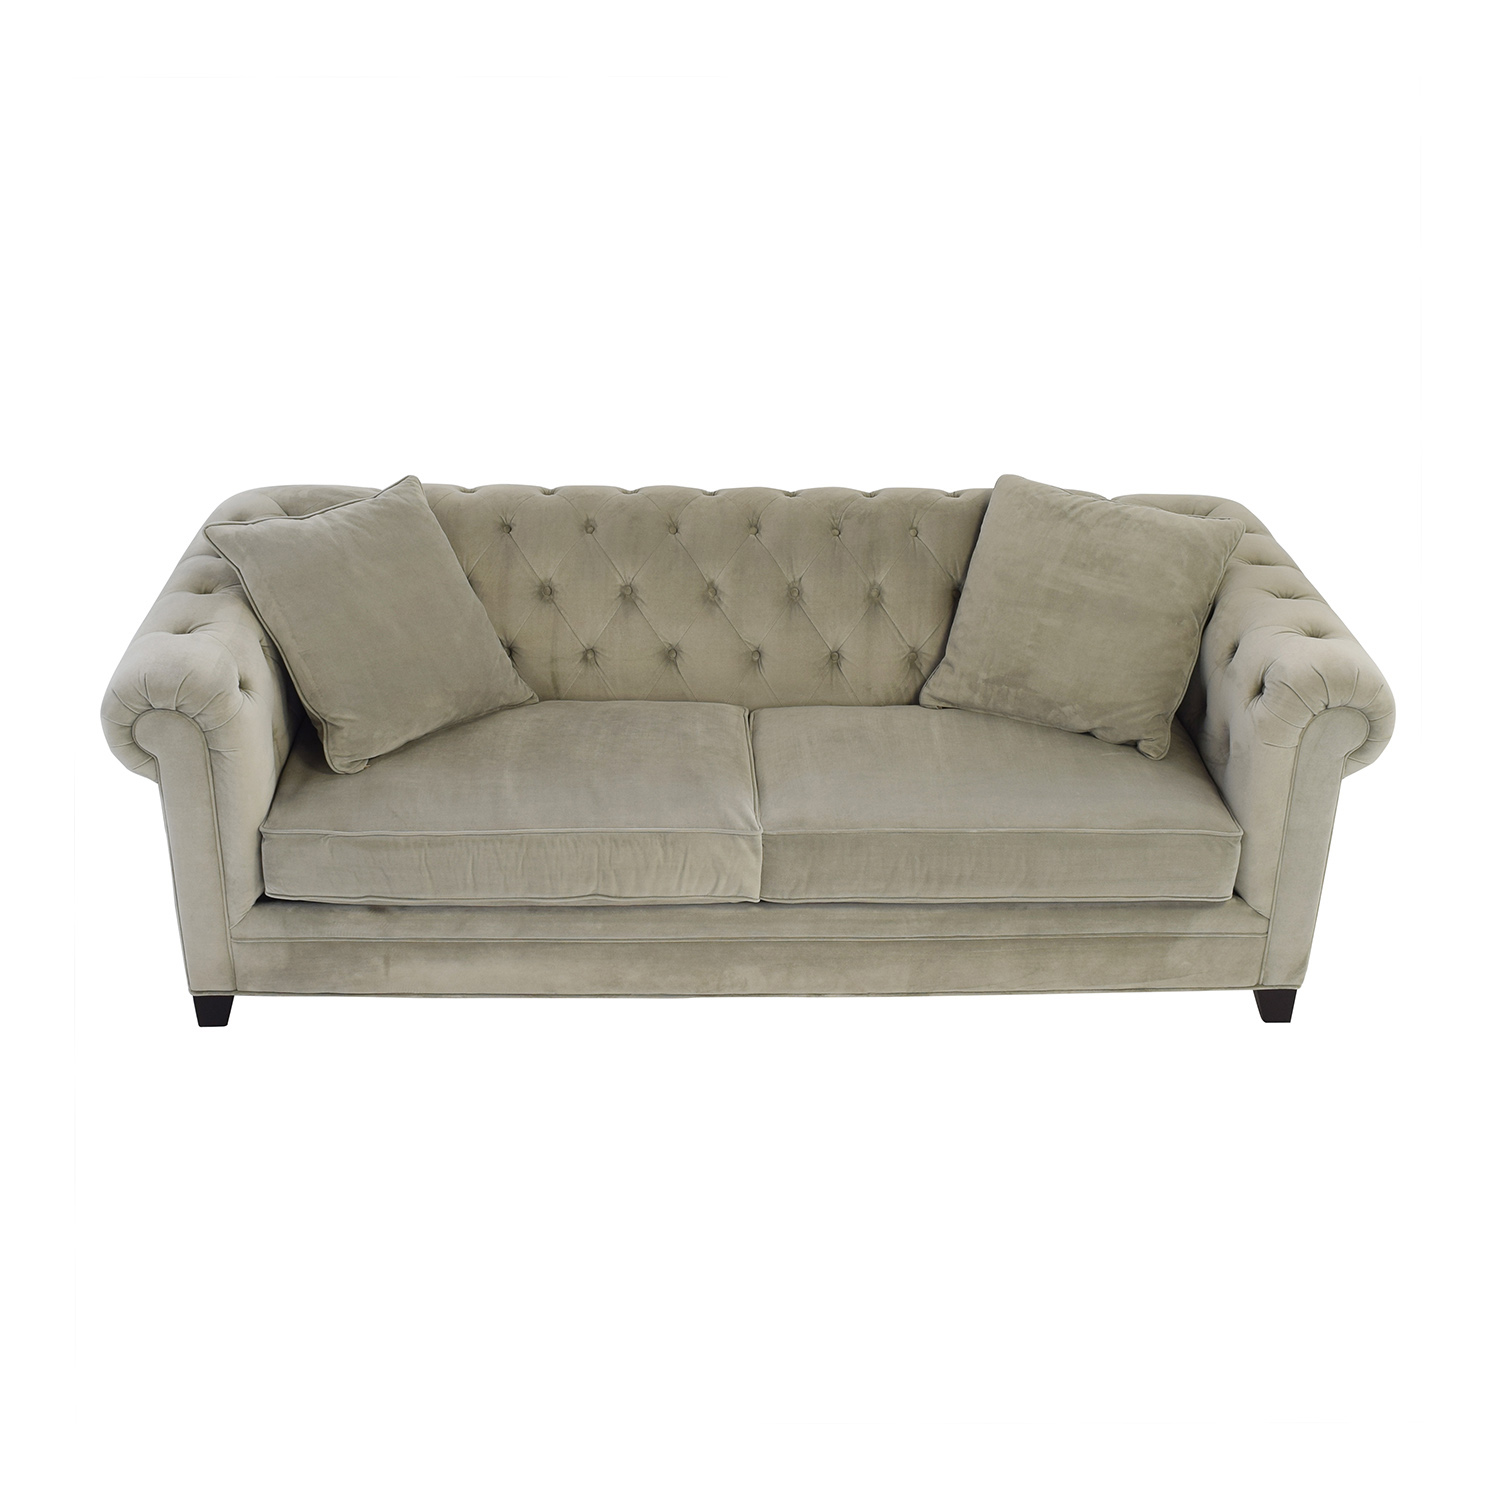 shop Macys Martha Stewart Collection Martha Stewart Saybridge Grey Sofa online